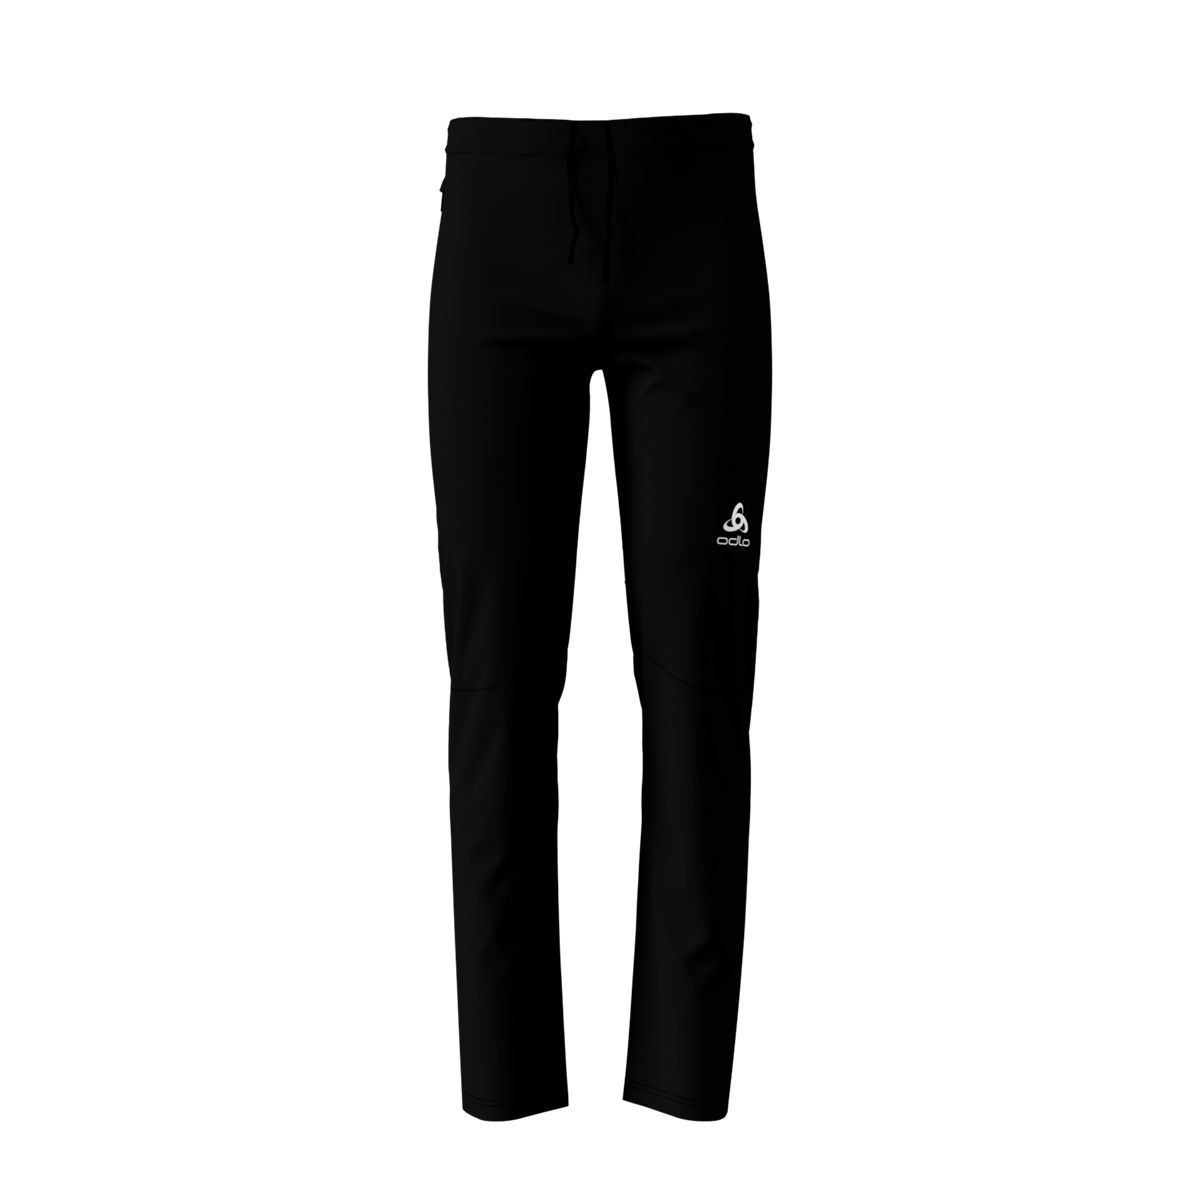 AEOLUS ELEMENT Men's Cycling Pants